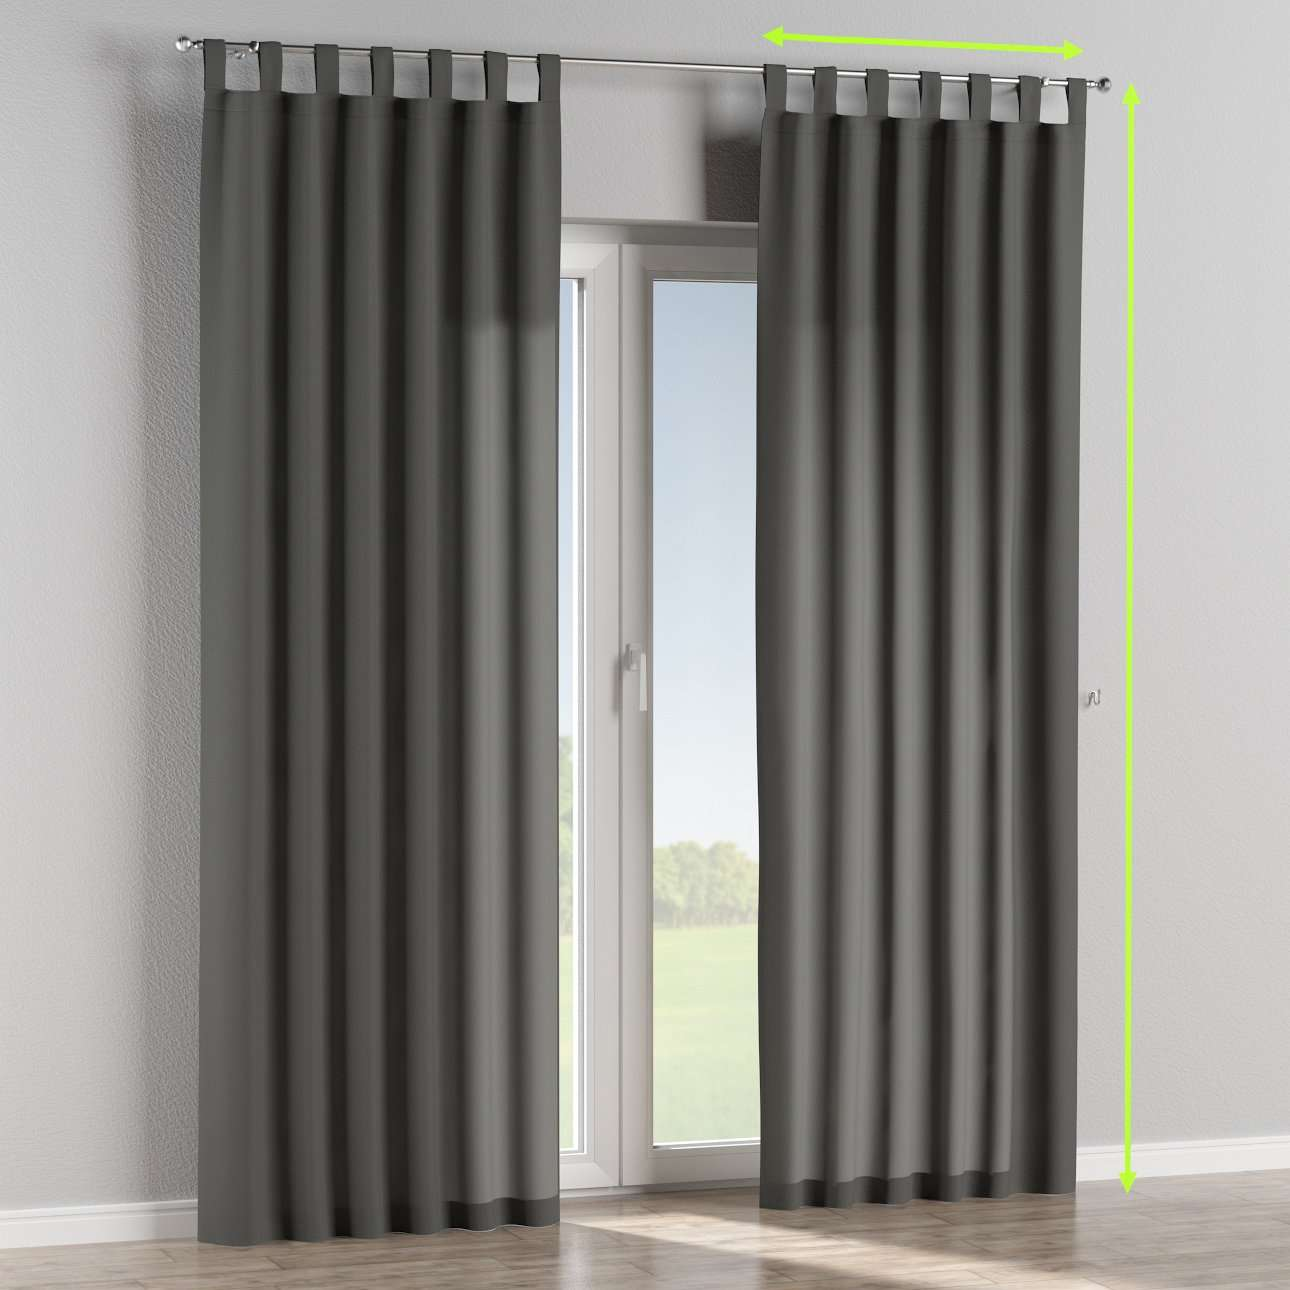 Tab top curtains in collection Quadro, fabric: 136-14